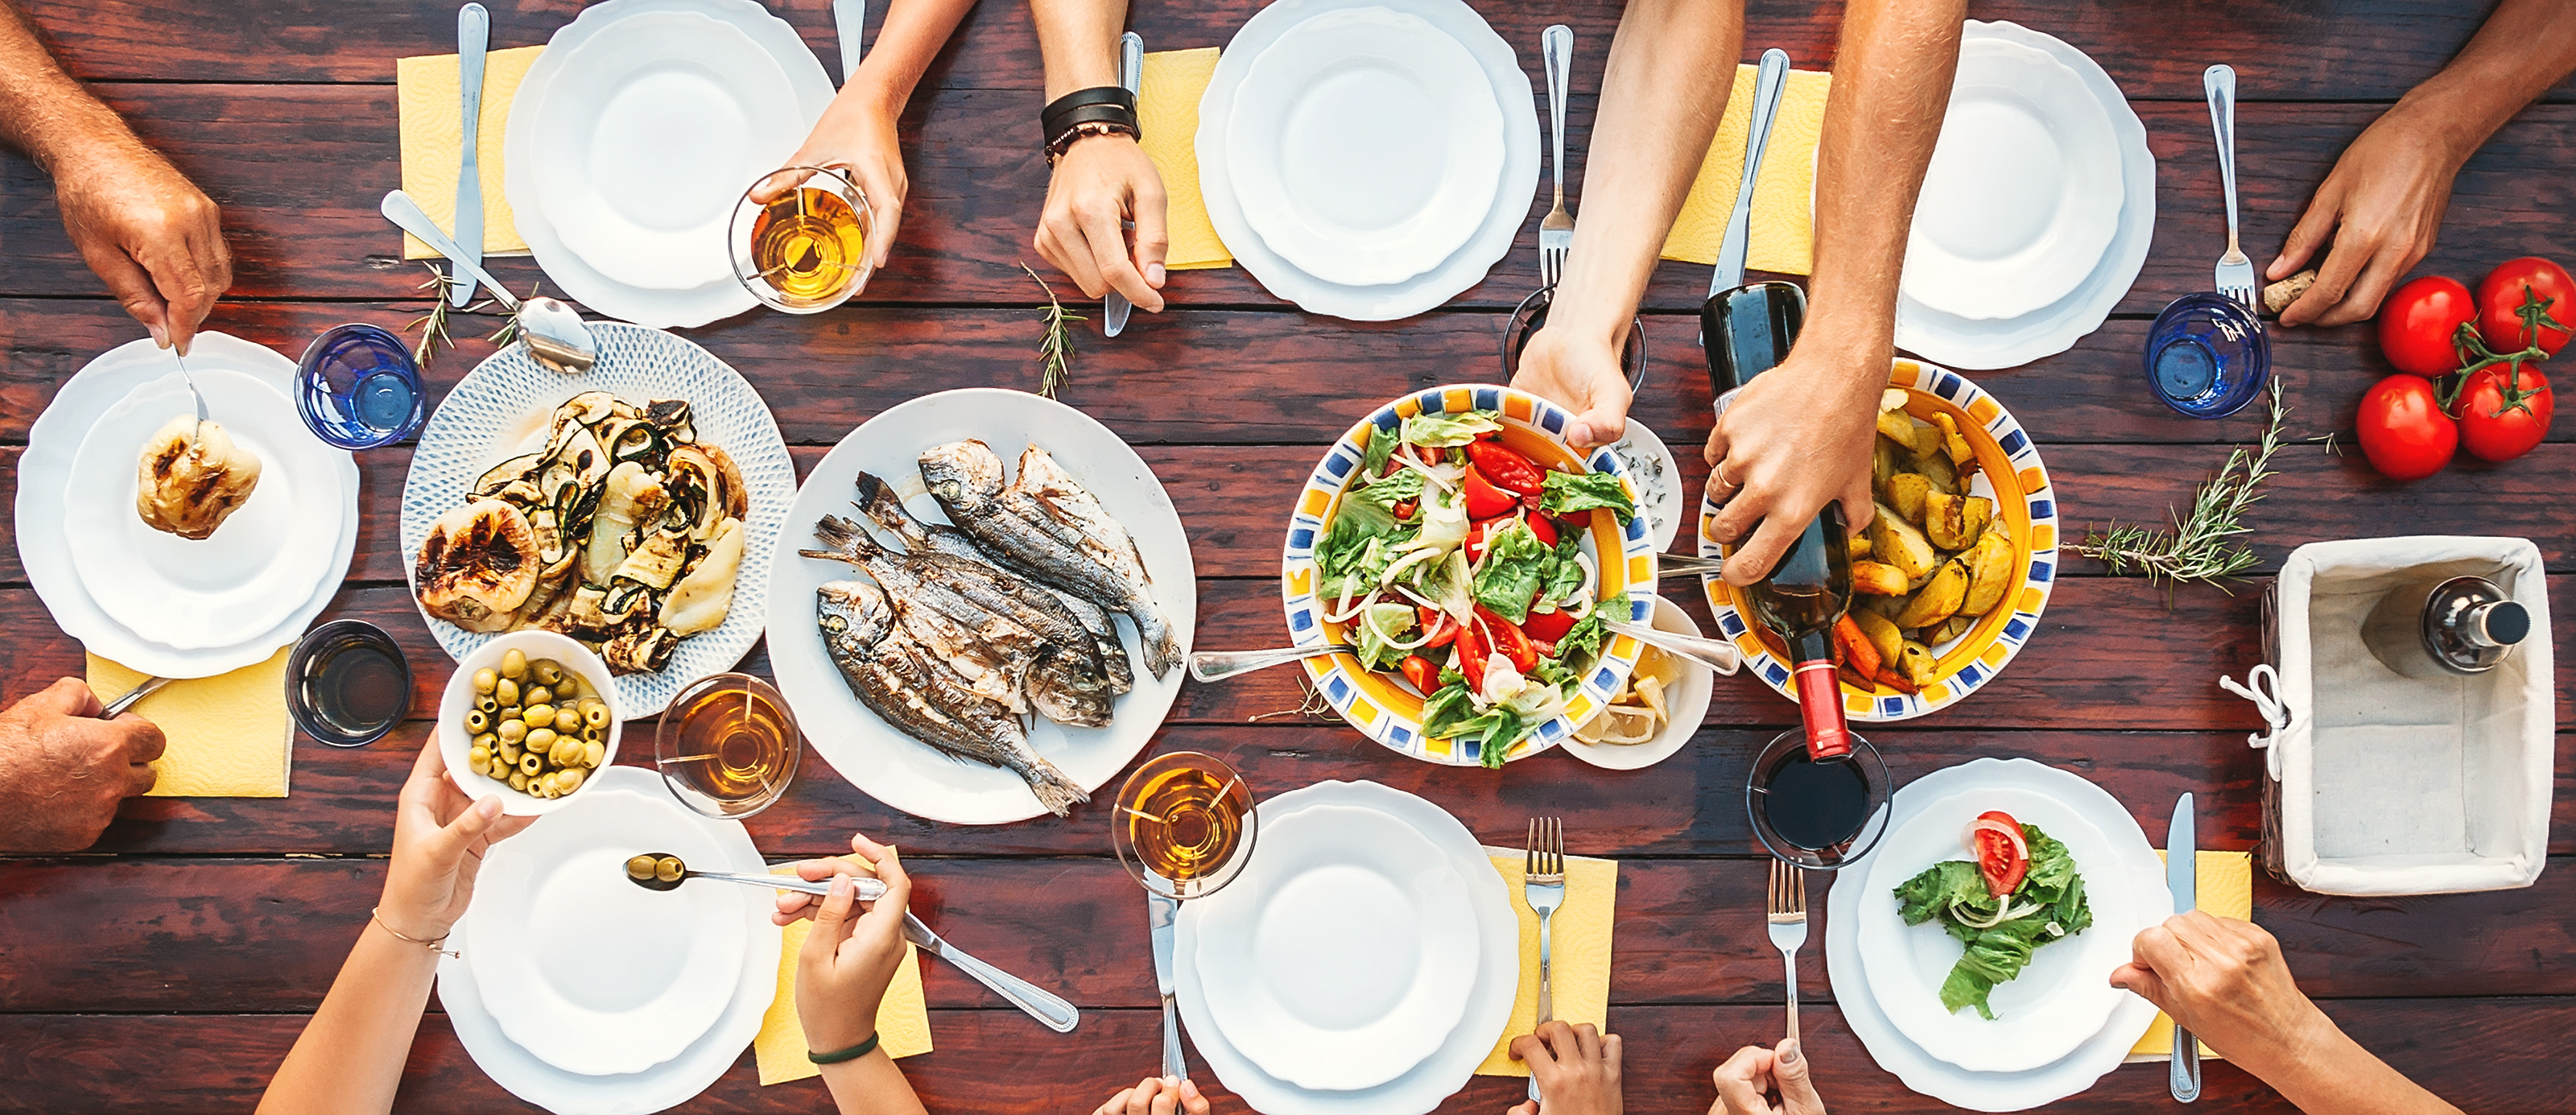 Around the world in table manners